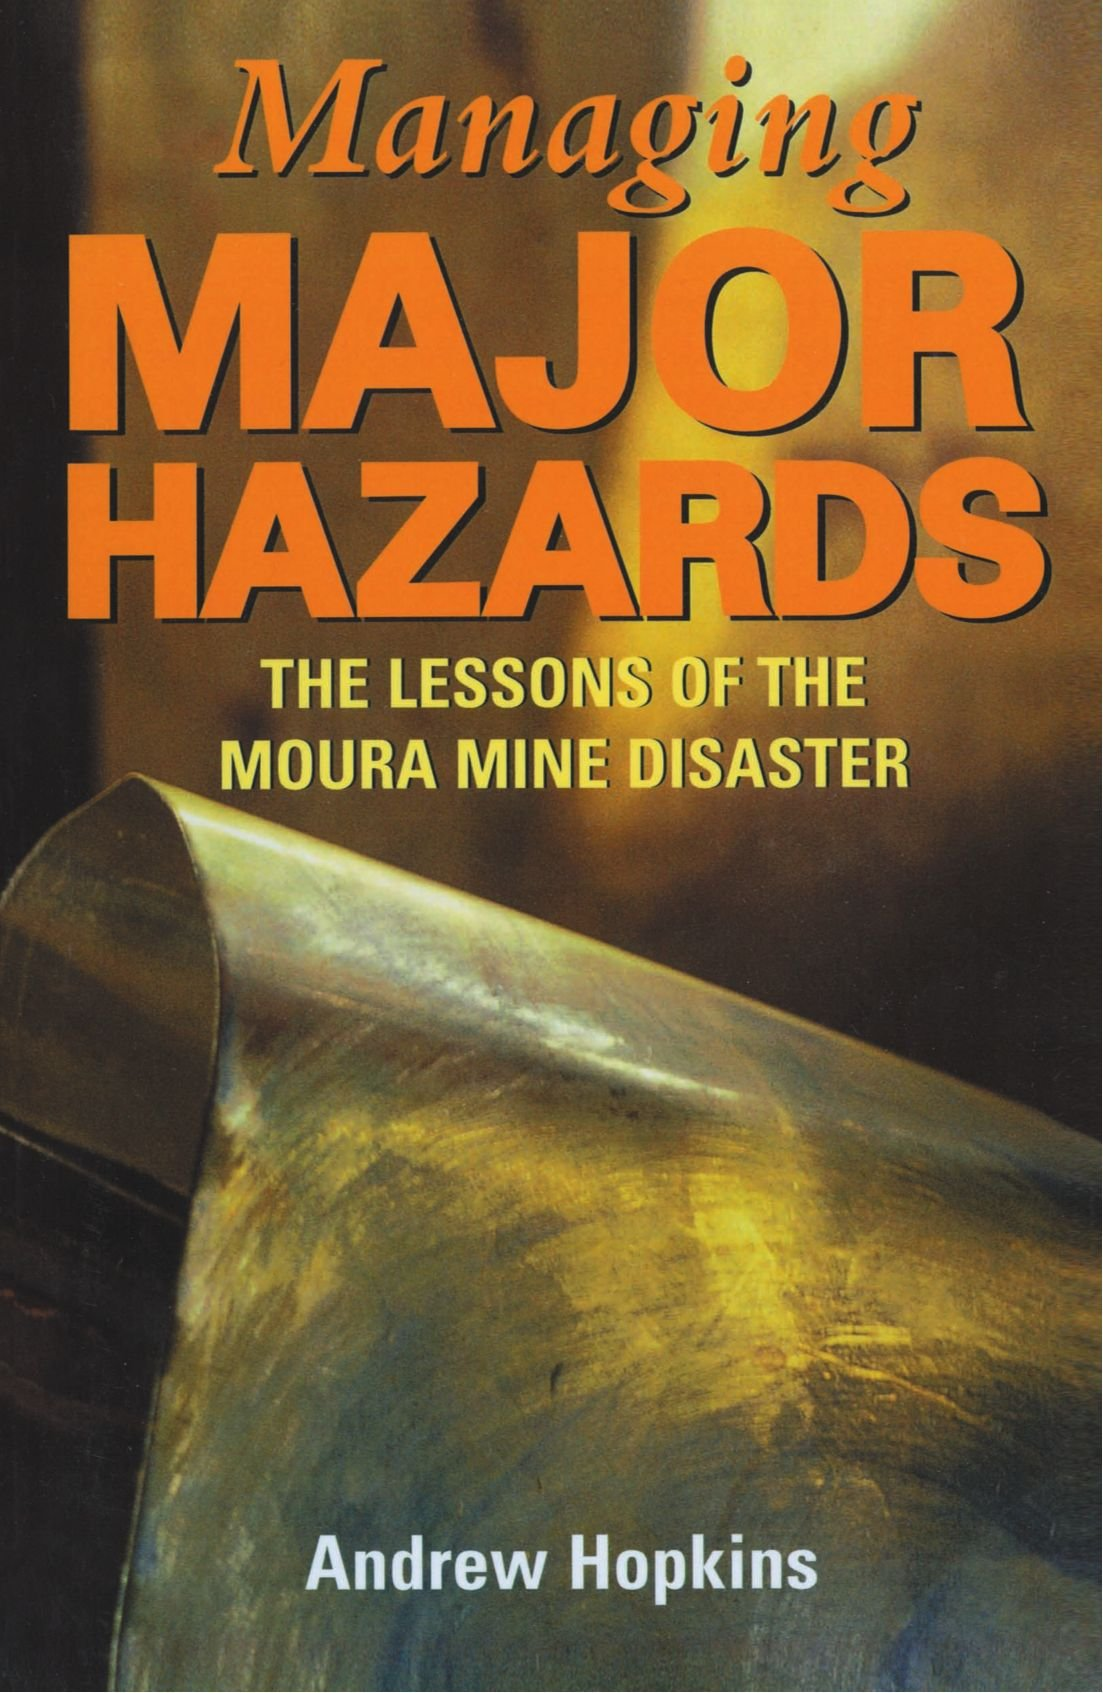 Managing Major Hazards: The Lessons of the Moura Mine Disaster